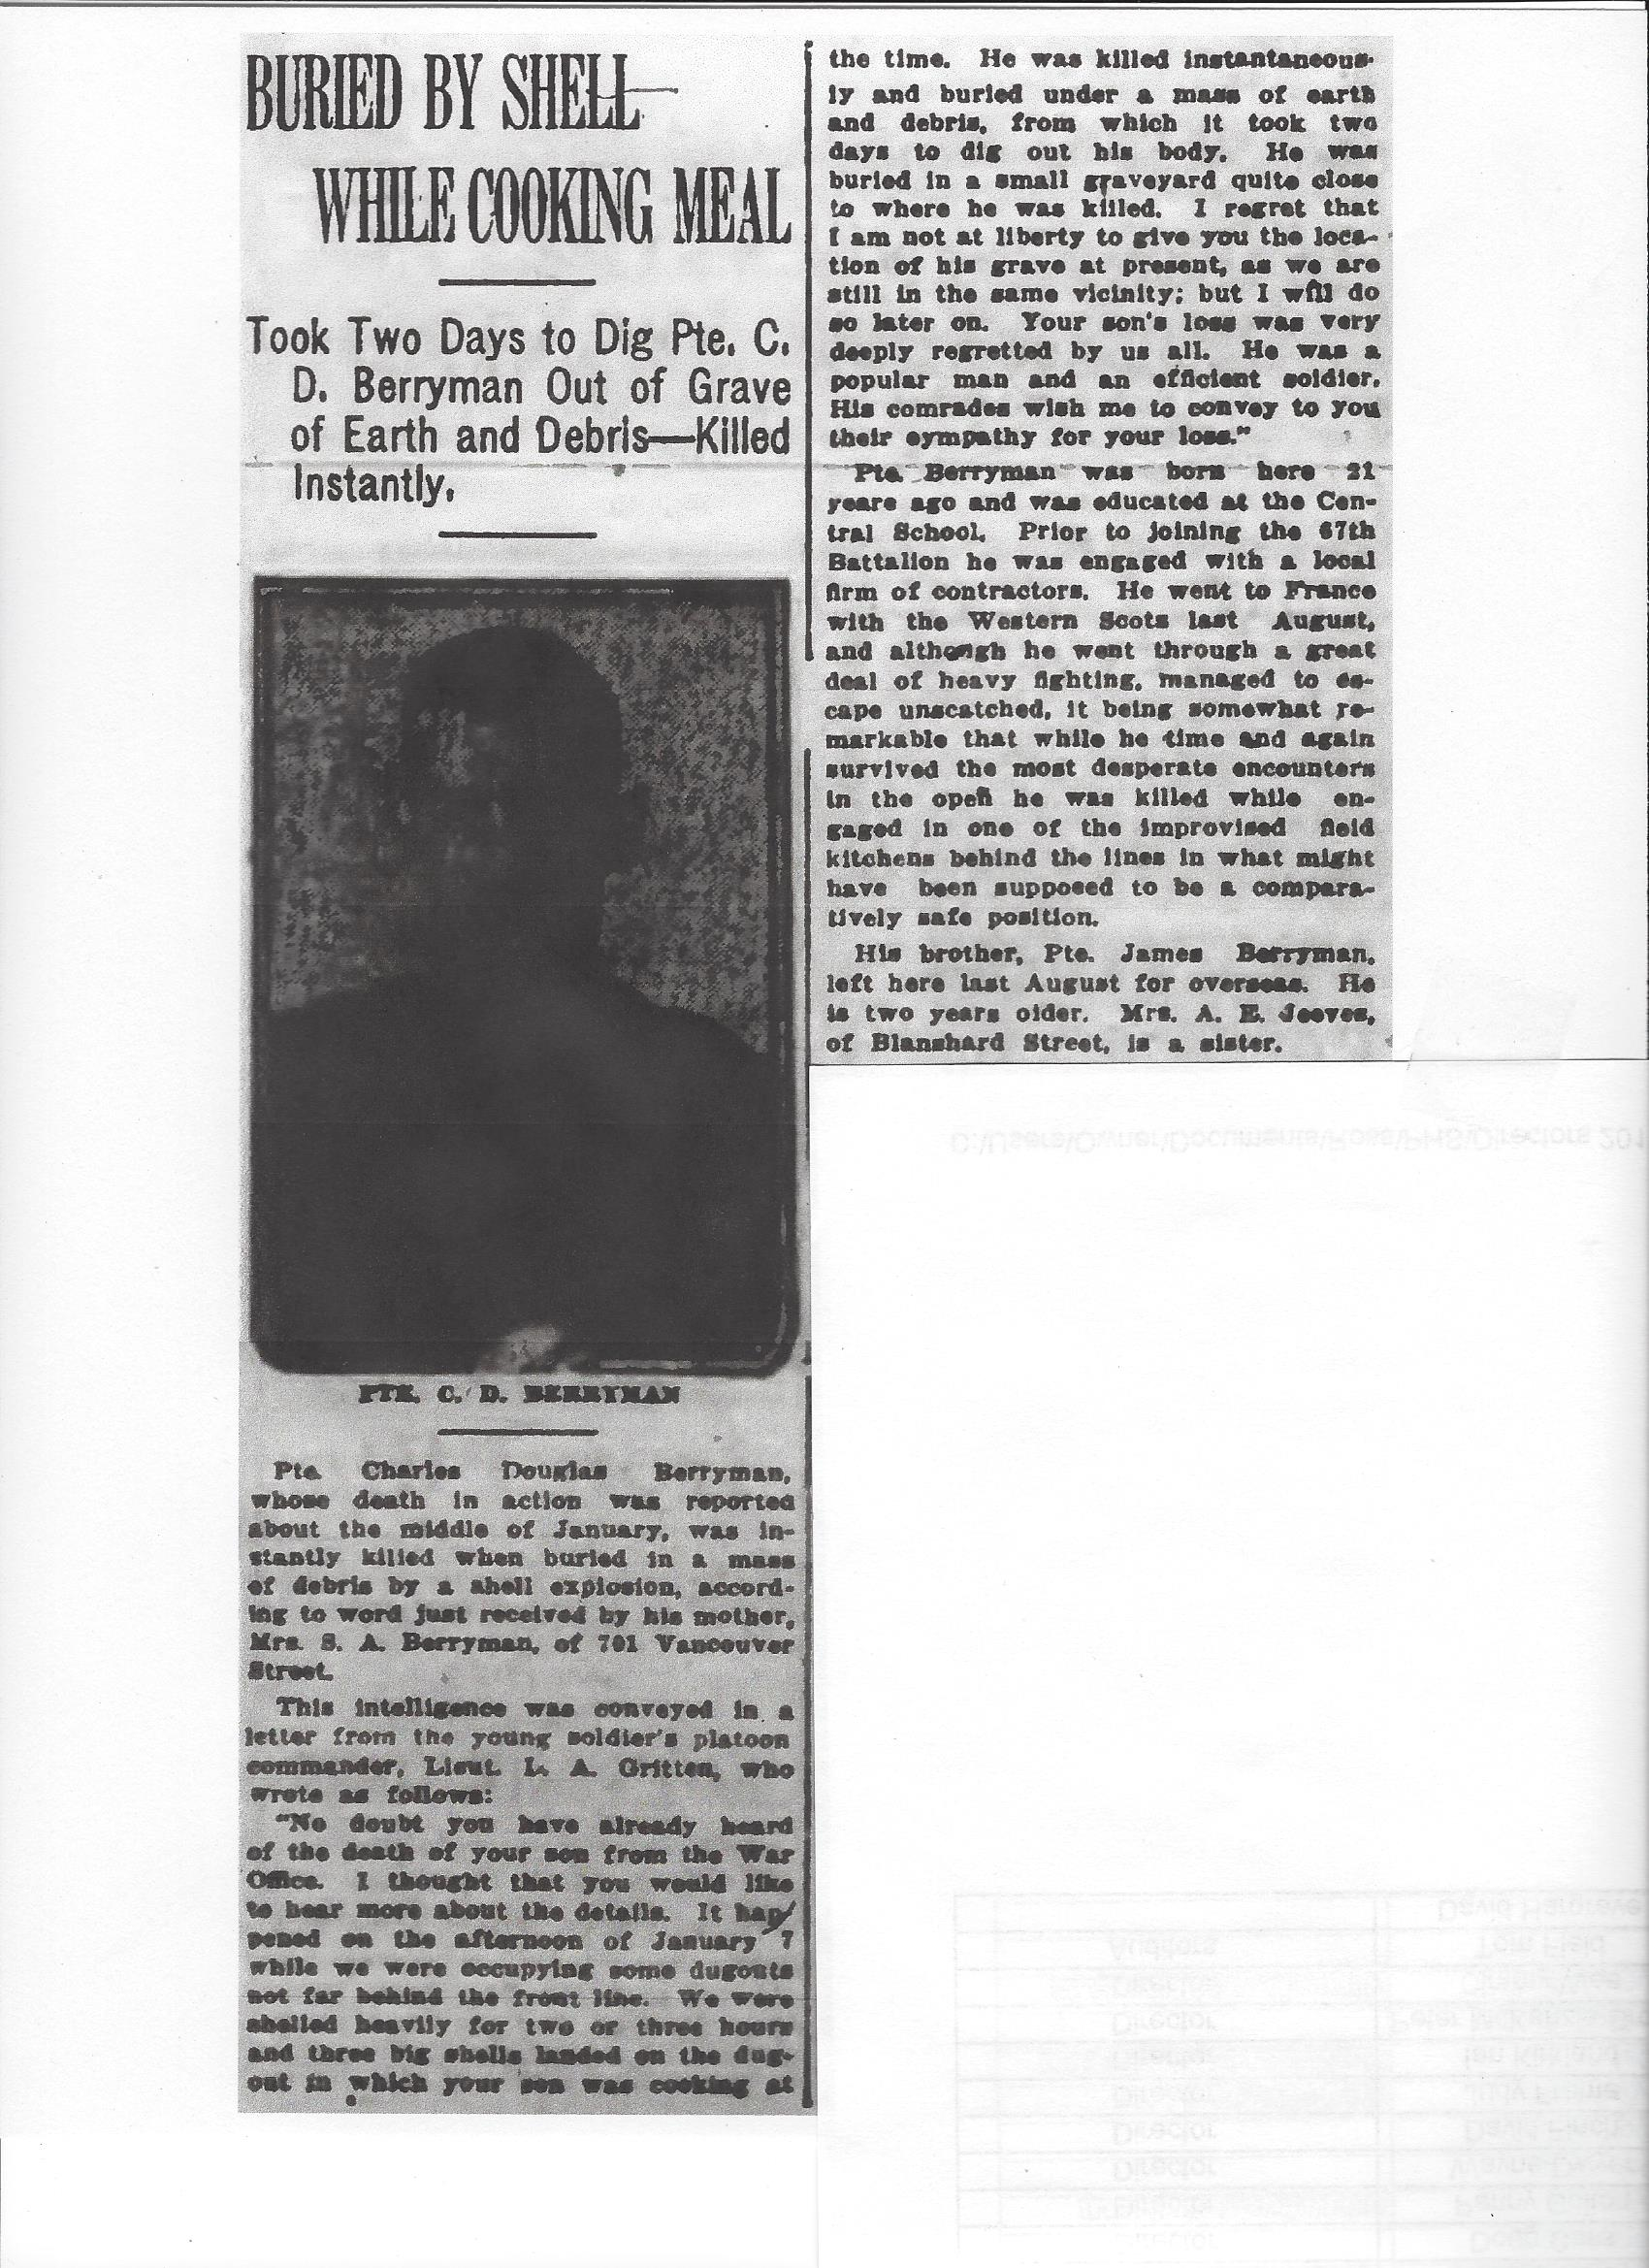 Newspaper clipping– From the Daily Colonist of March 18, 1917. Image taken from web address of http://archive.org/stream/dailycolonist59y84uvic#page/n0/mode/1up